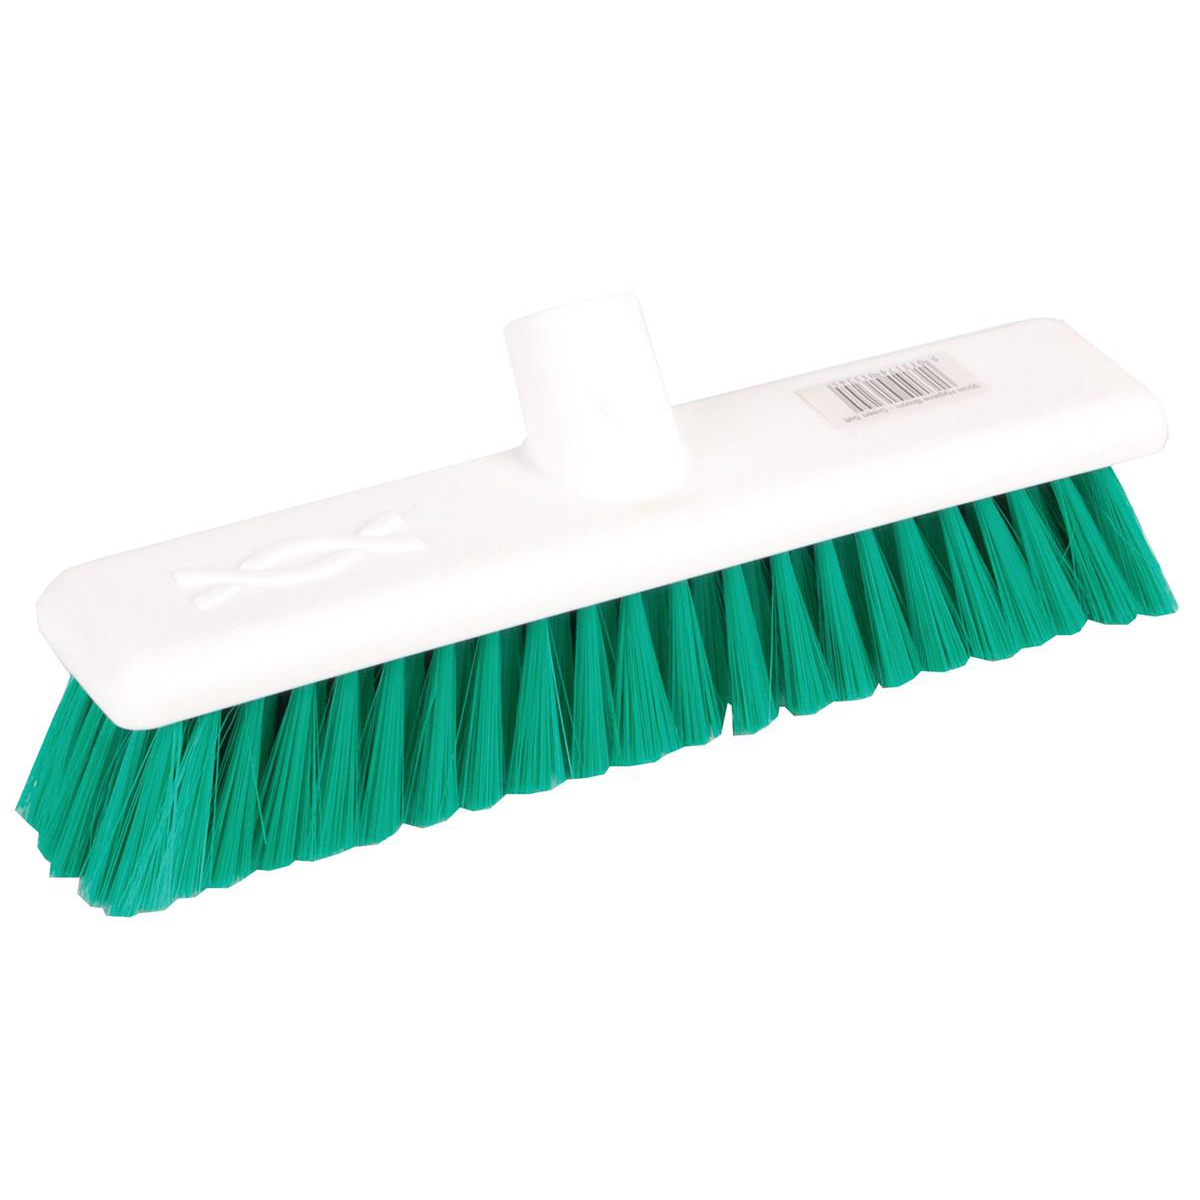 Brushes & Brooms Robert Scott & Sons Abbey Hygiene Broom 12inch Washable Soft Broom Head Green Ref BHYRS12SG